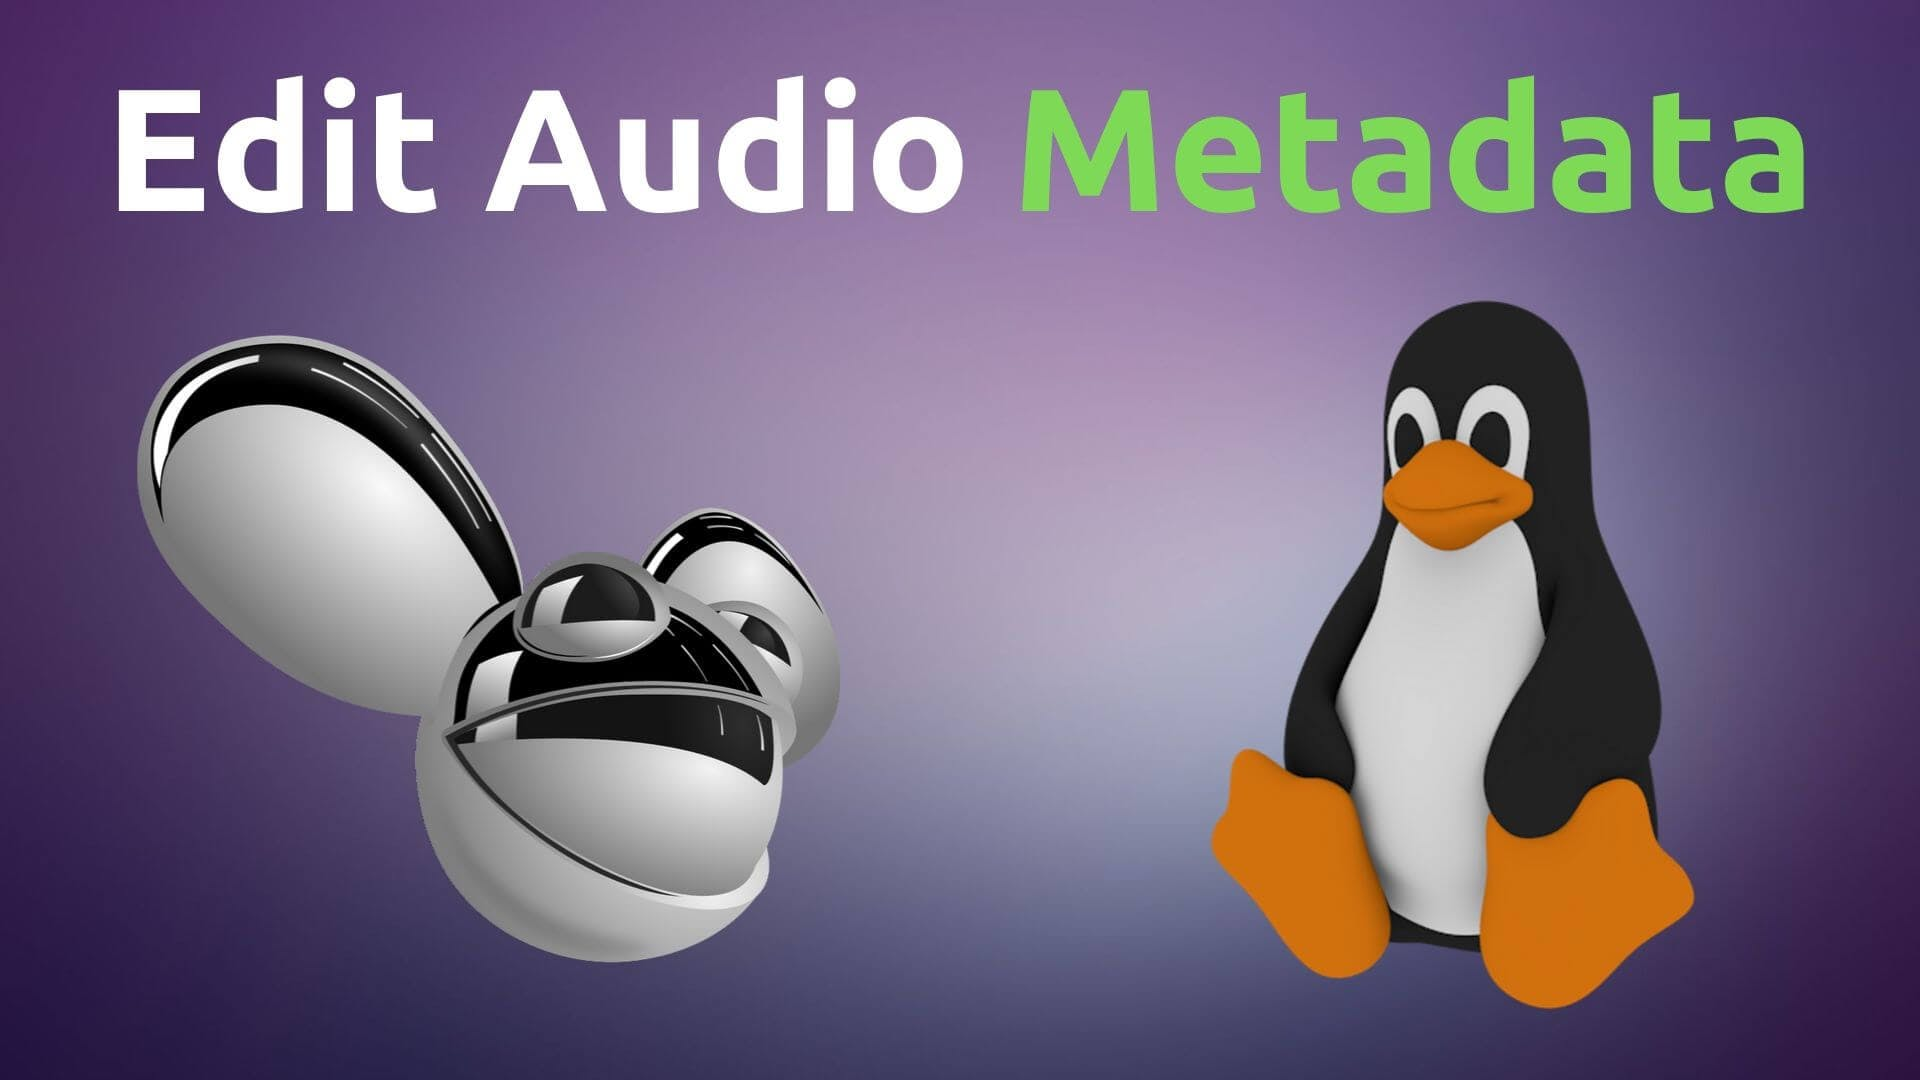 deadmau5 head and linux penguin